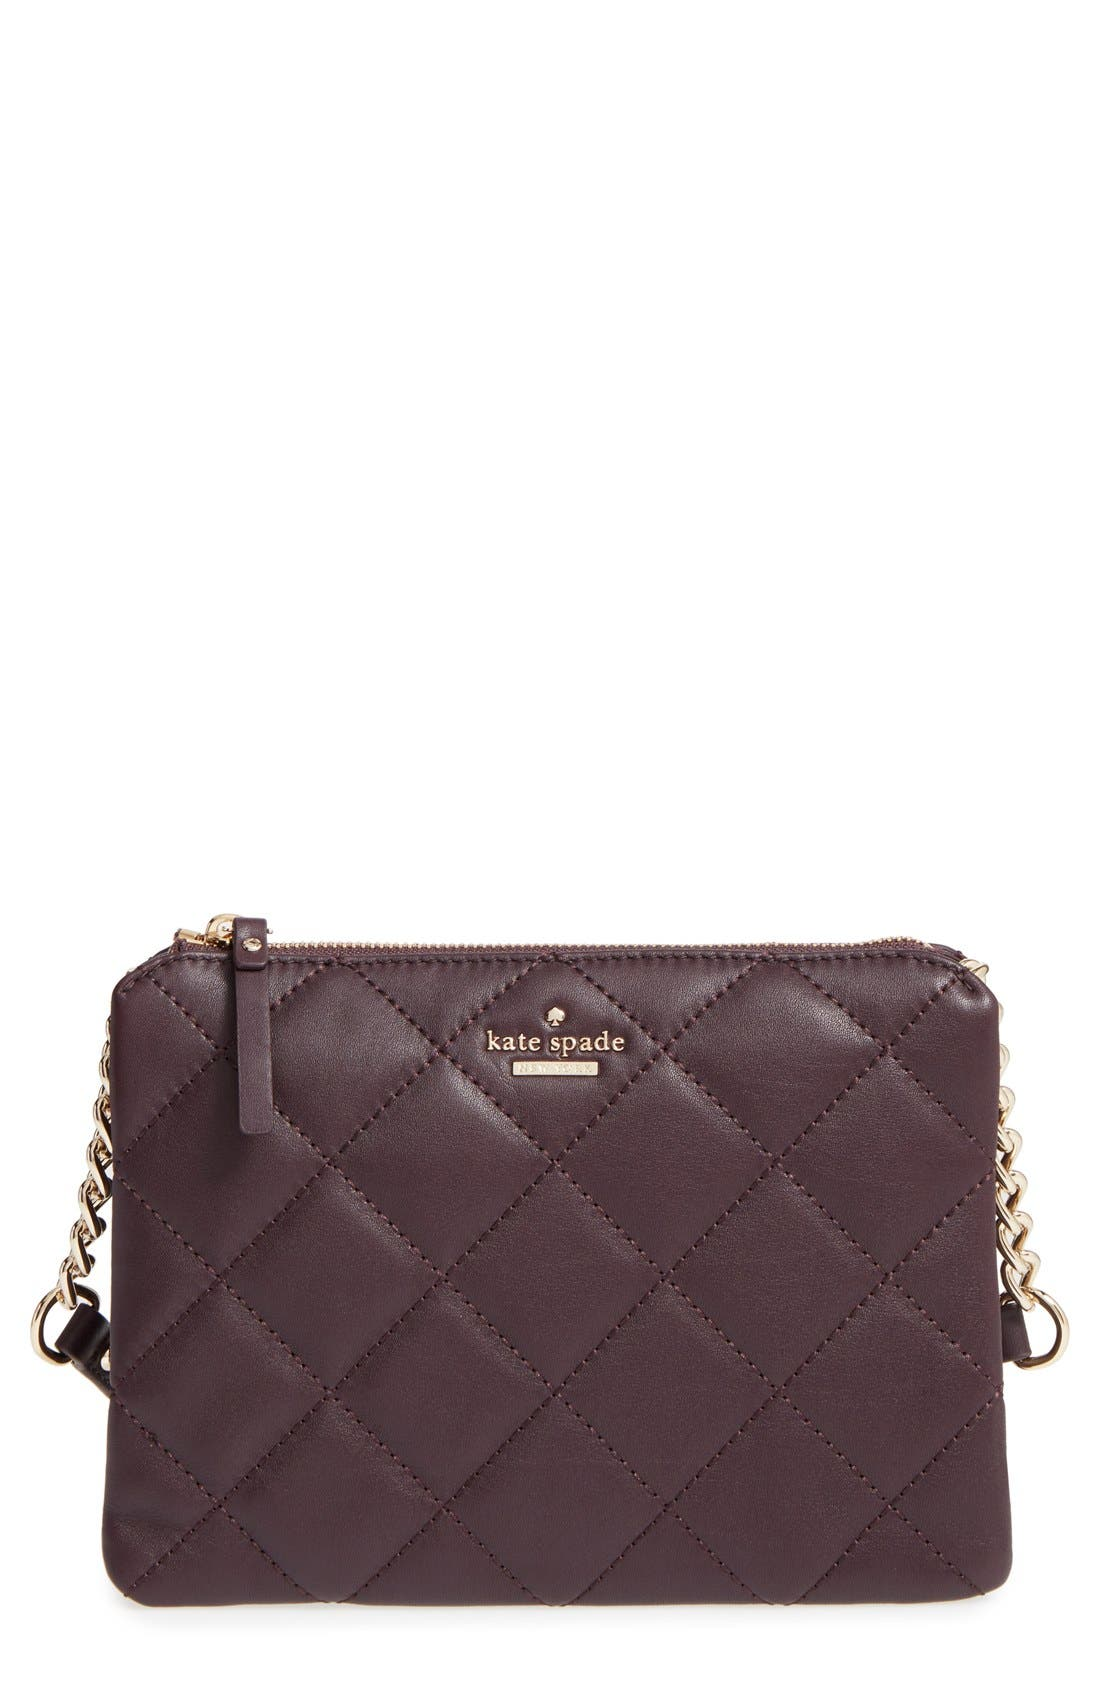 Alternate Image 1 Selected - kate spade new york emerson place harbor leather crossbody bag